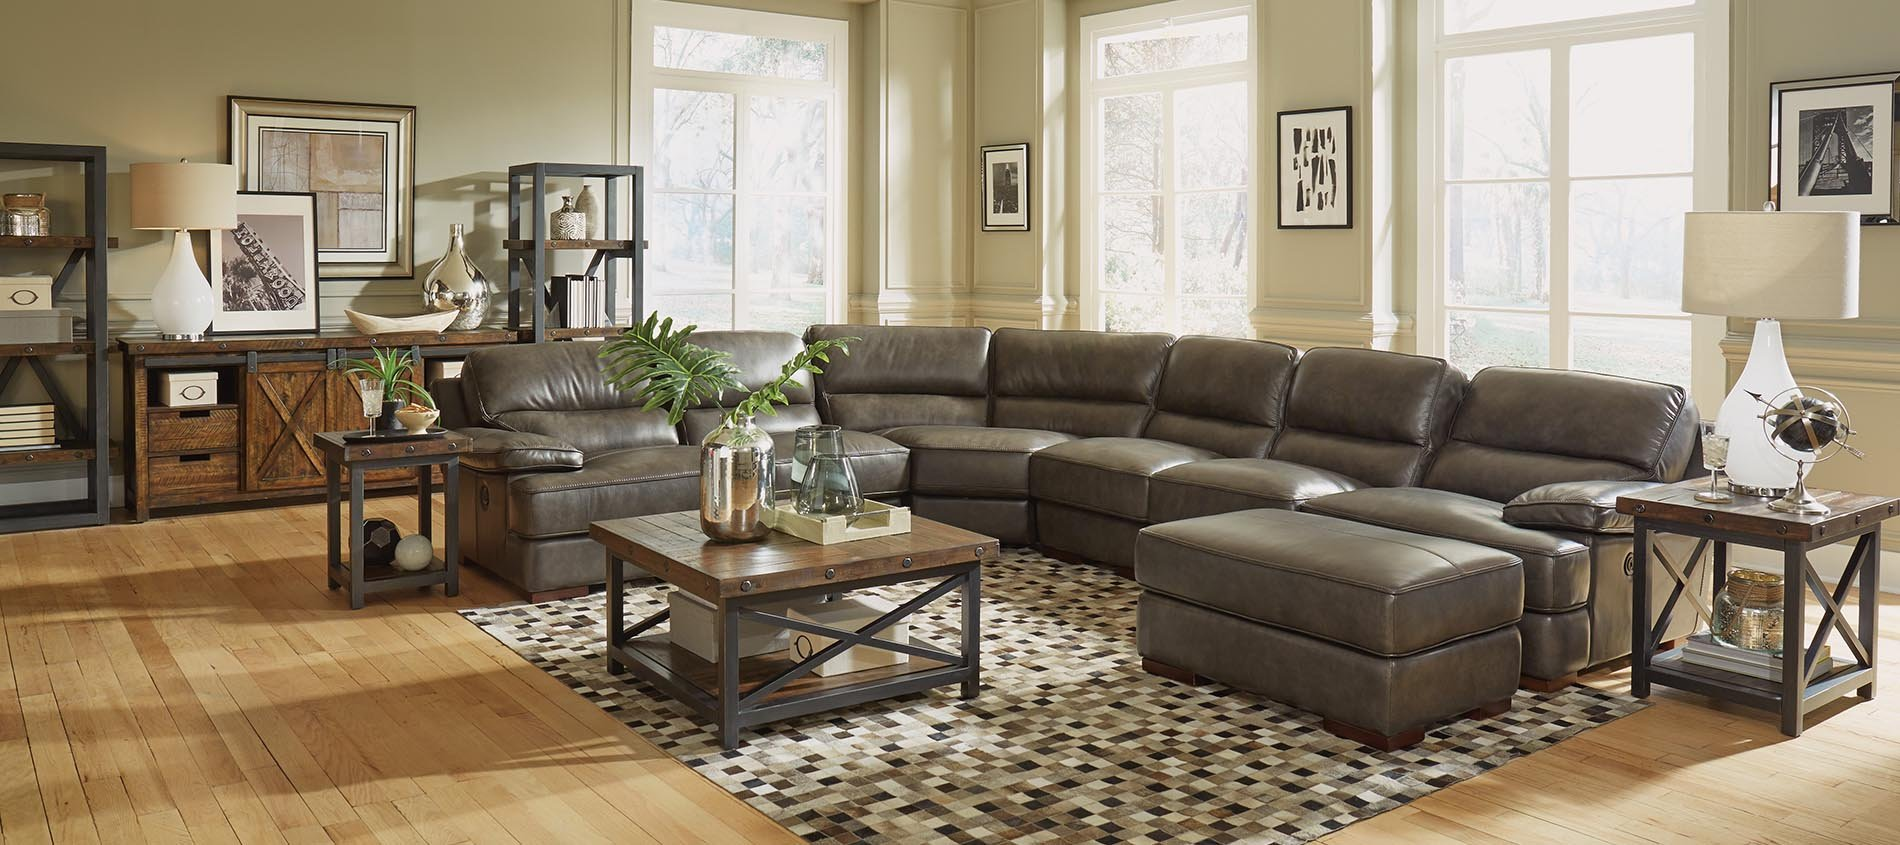 leather furniture quality comfort